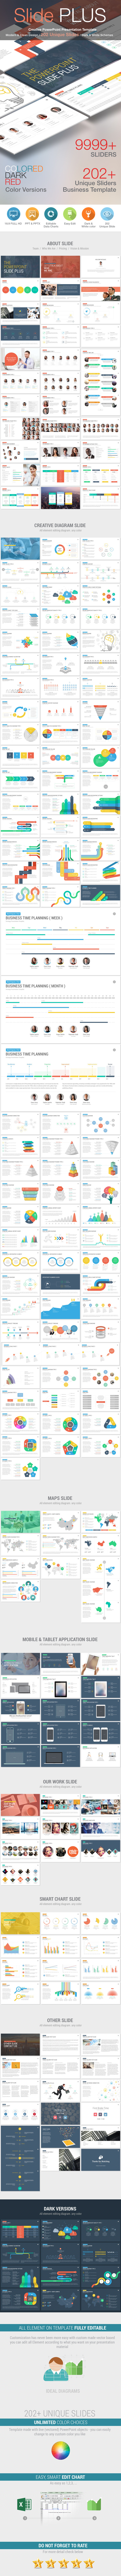 GraphicRiver Slide PLUS Presentation Template 8956689